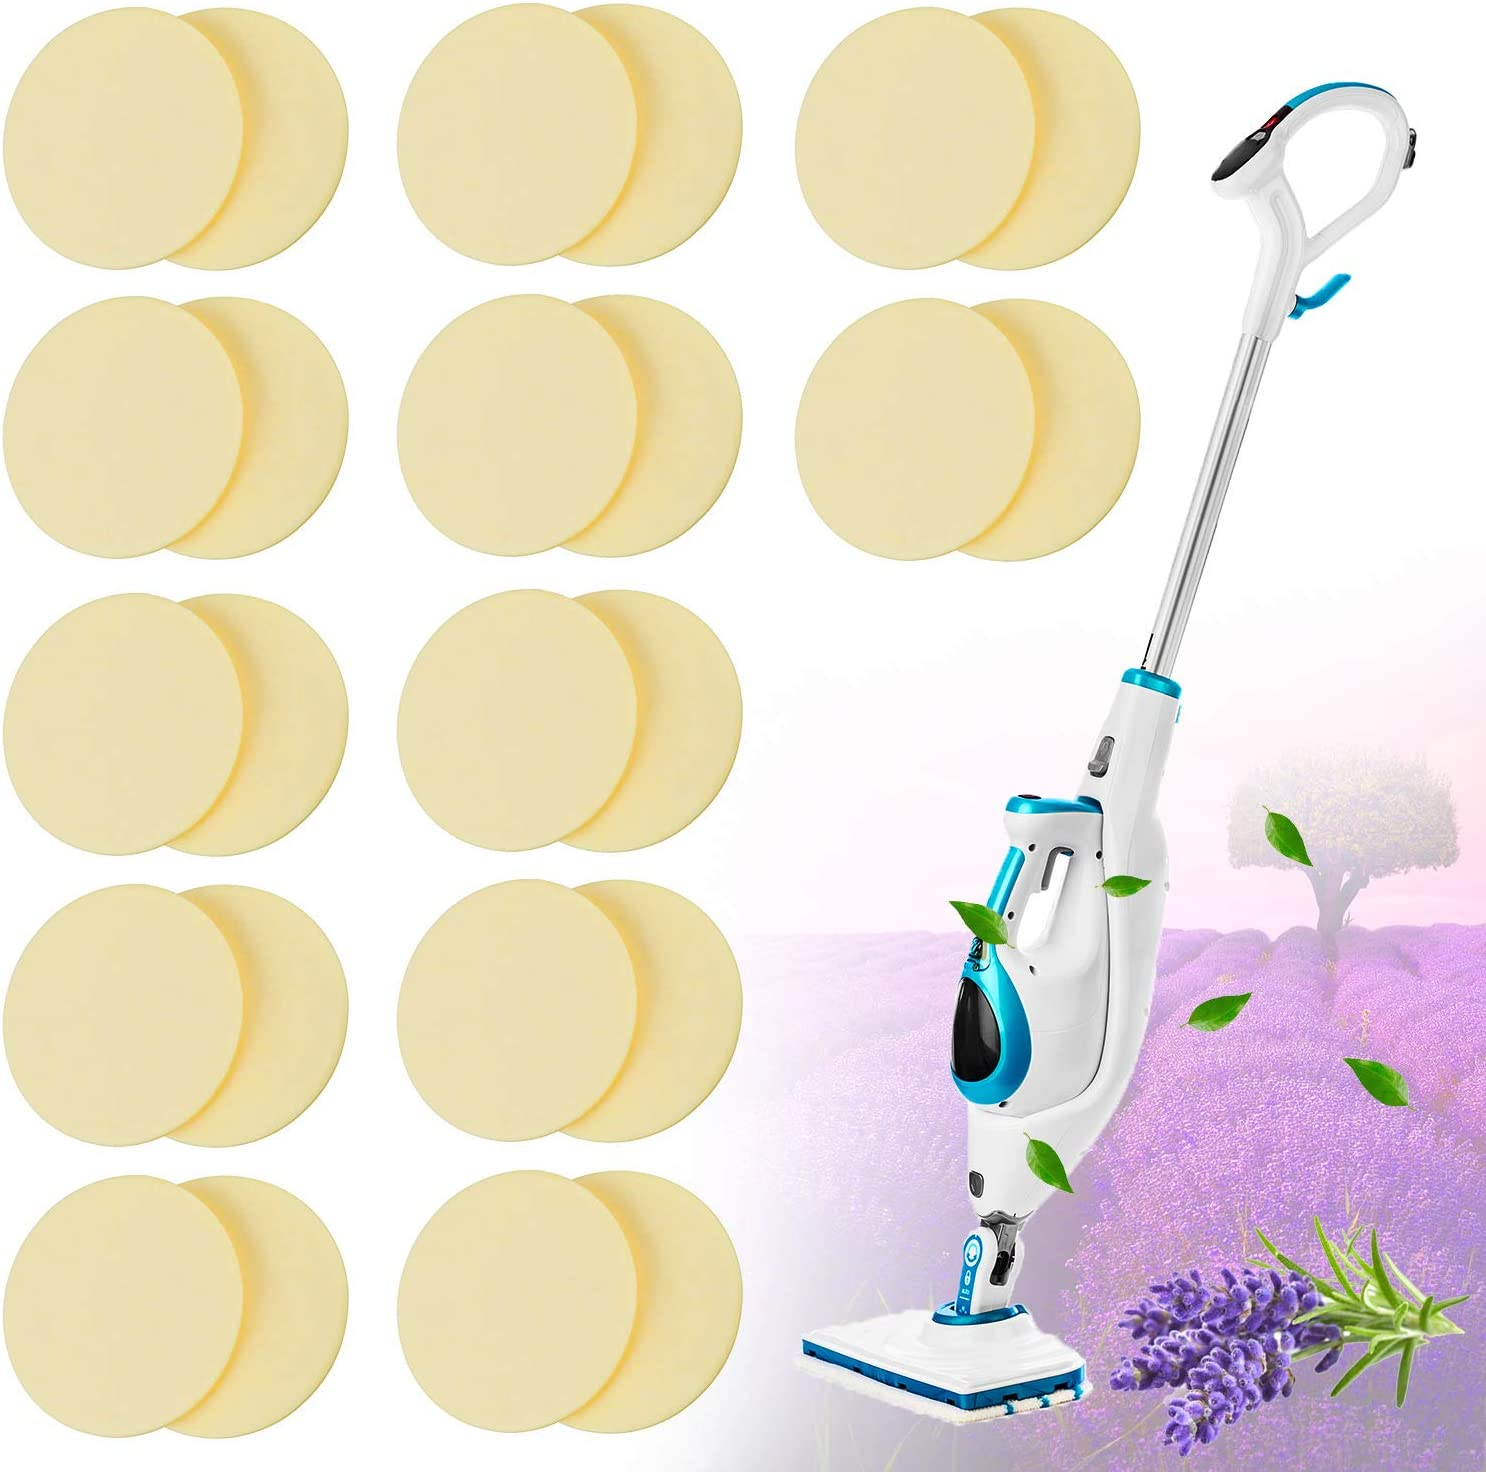 Replacement Steam Mop Scent Discs Lavender Fragrance Discs Pads Steam Mop Compatible with Bissell Powerfresh and Symphony Series Fits Model 1940, 1806 and 1132, Lavender Fresh Fragrance (24 Pack)